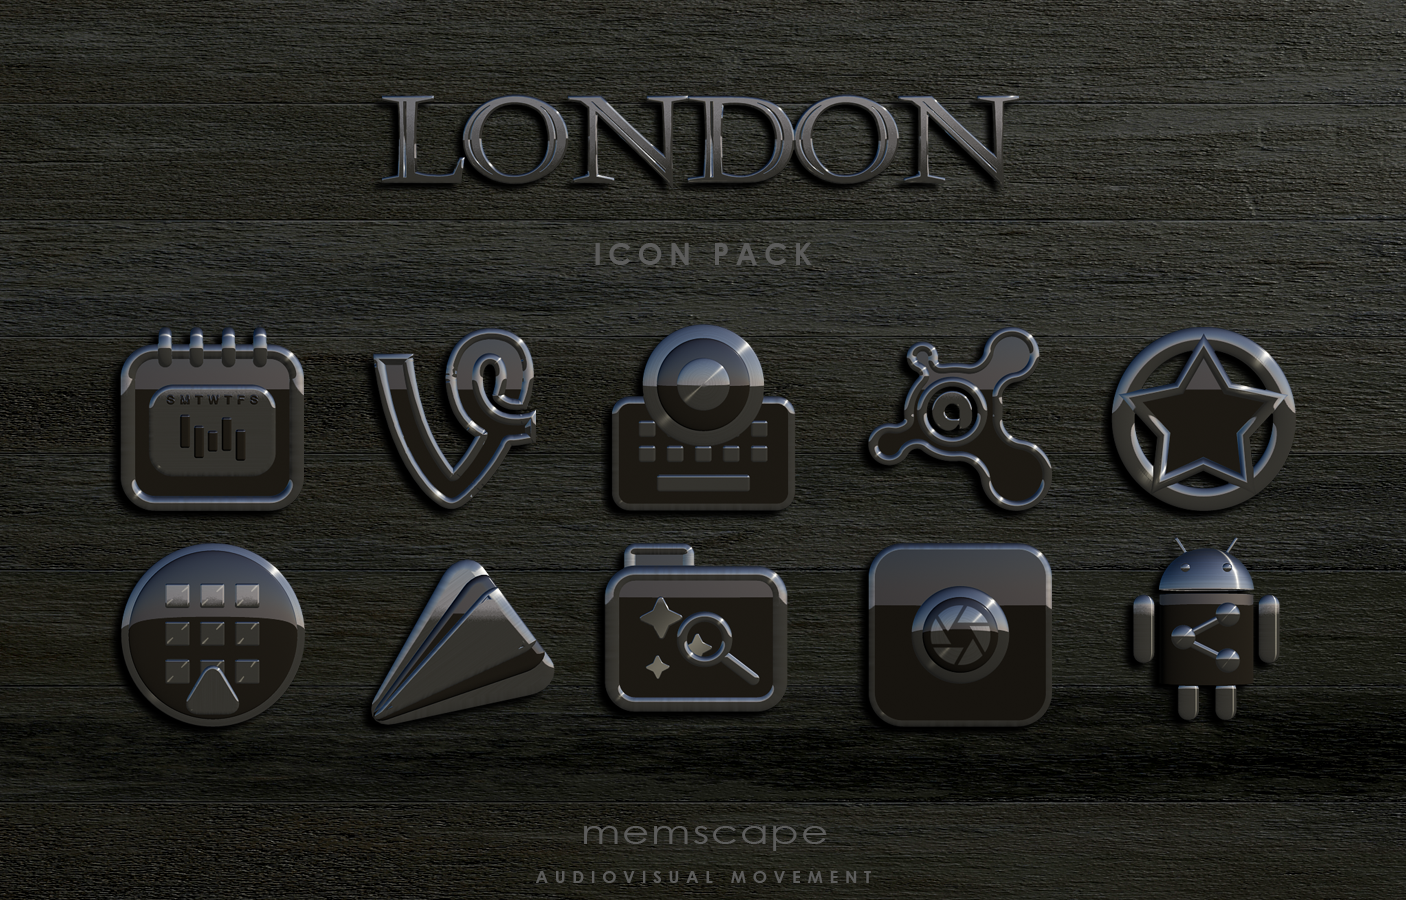 LONDON Icon Pack Screenshot 8